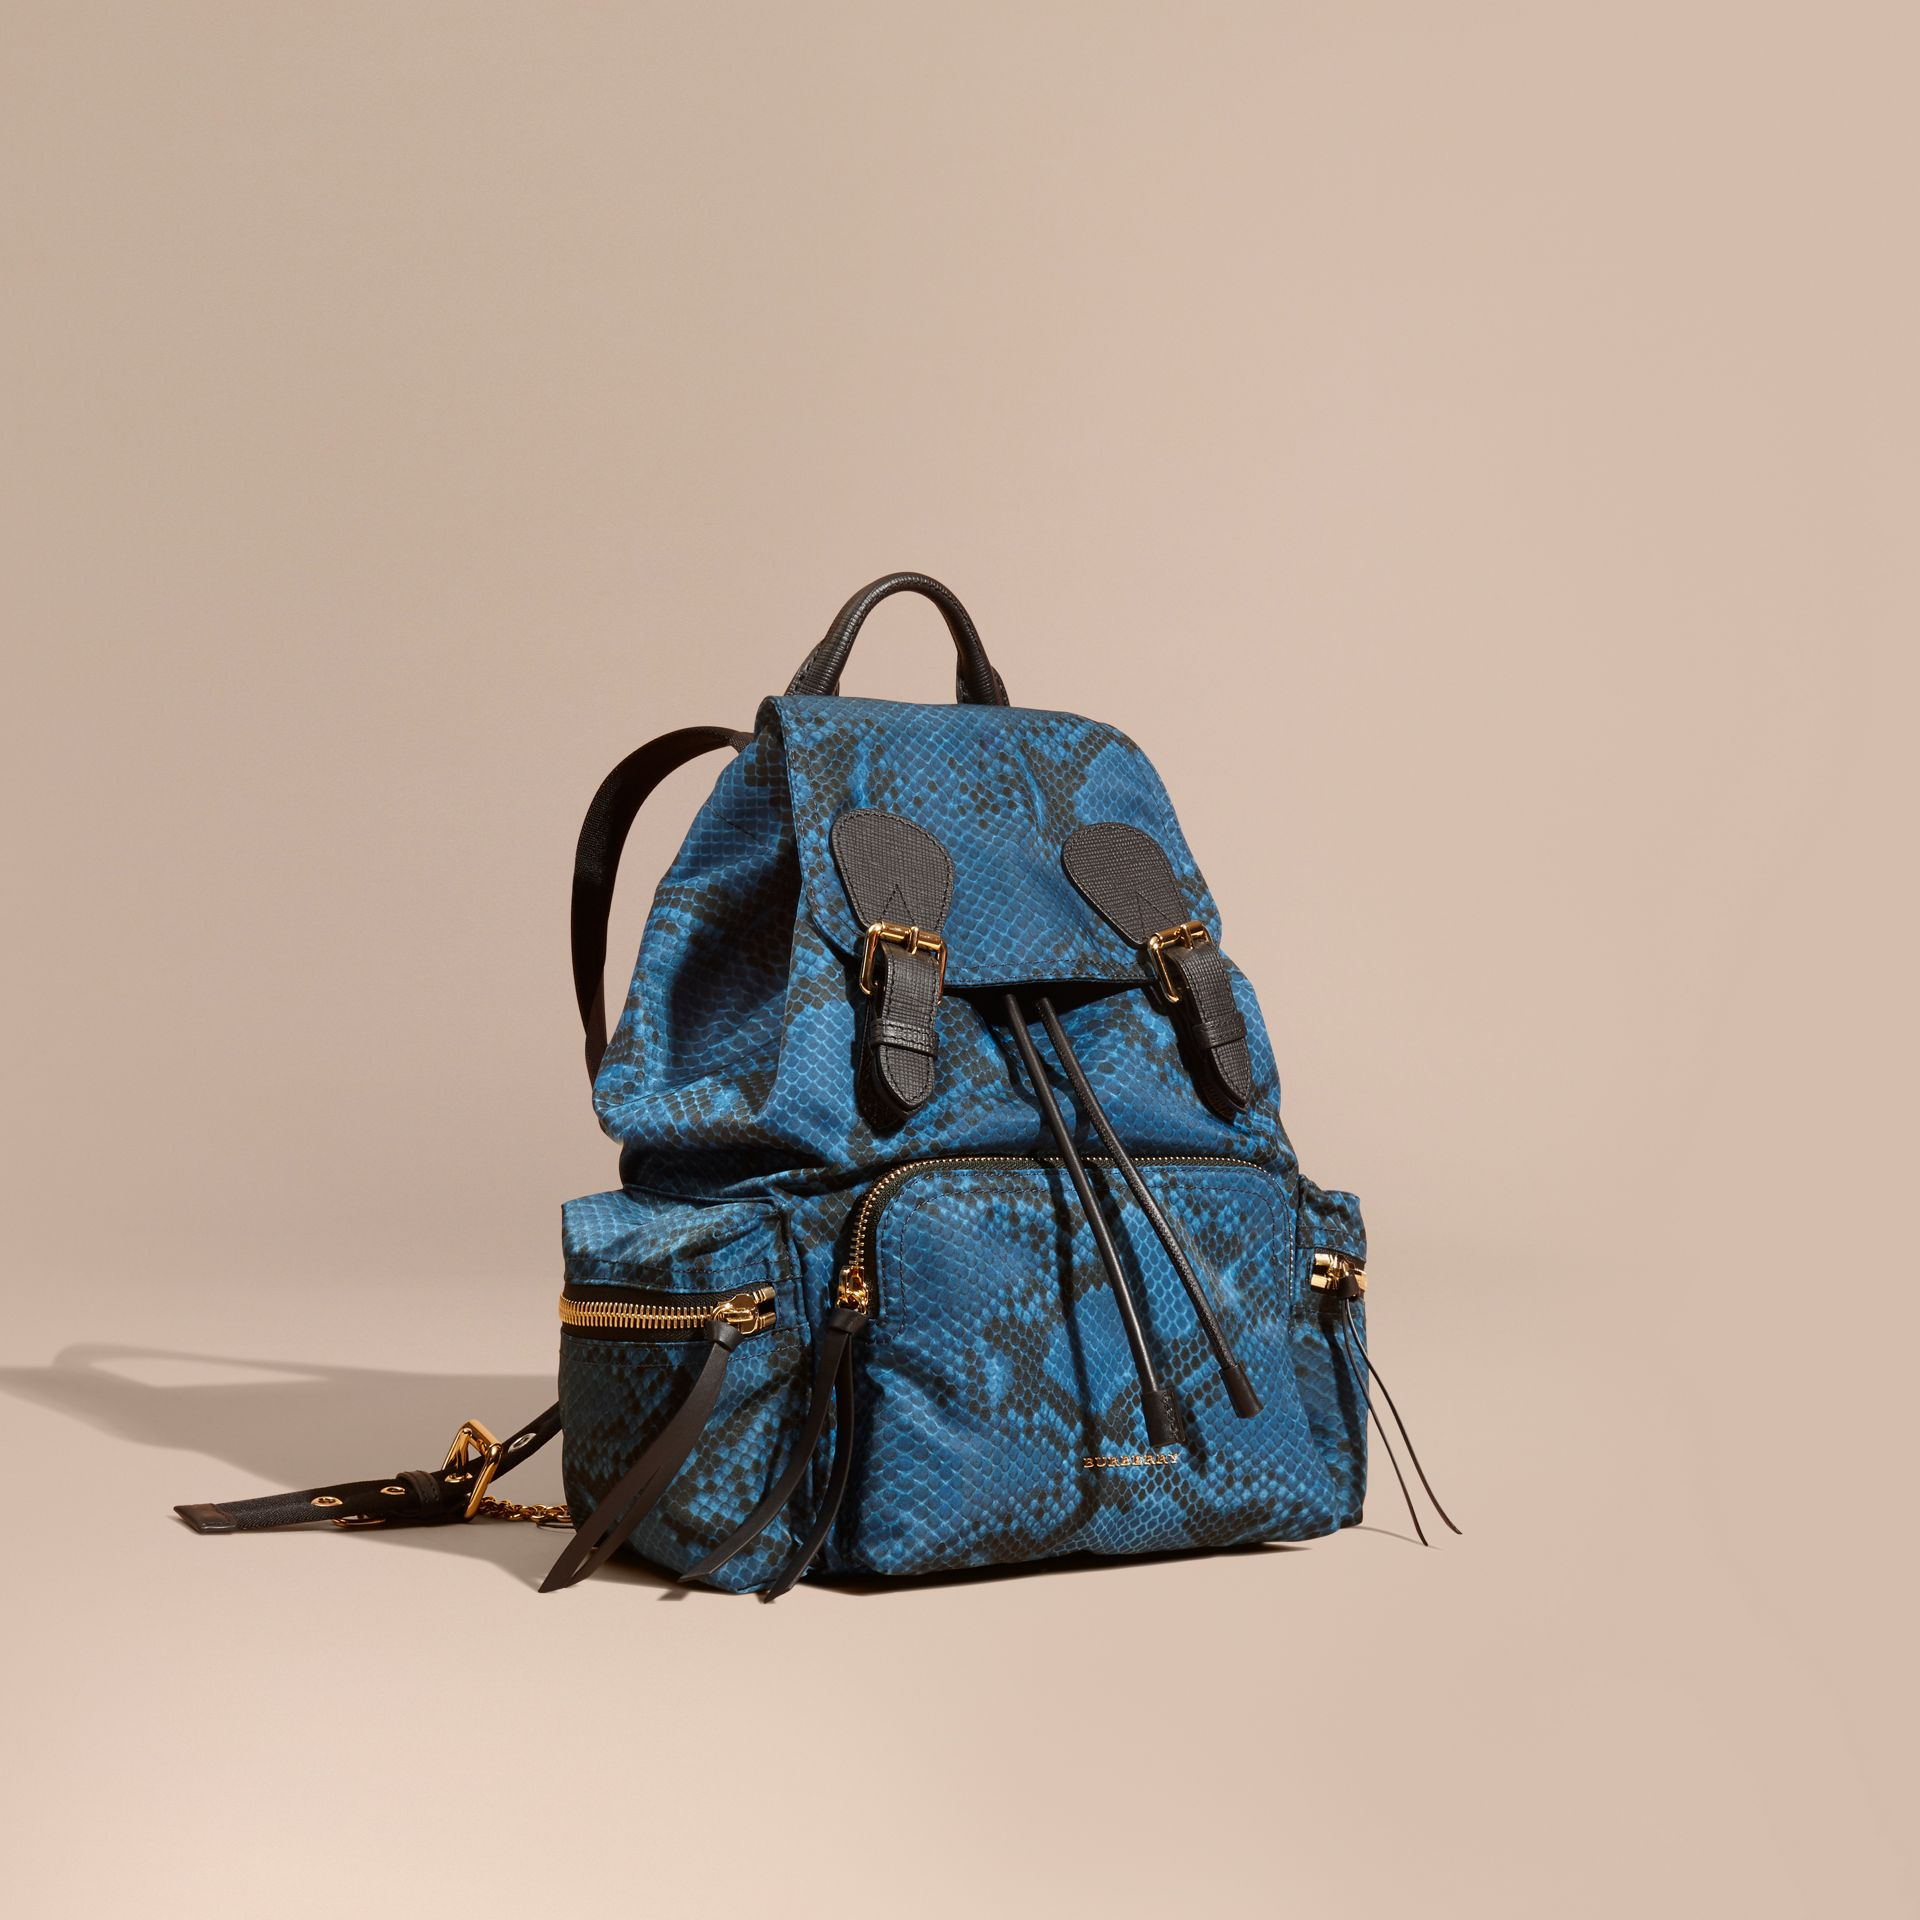 Bleu Sac The Rucksack medium en nylon à imprimé python et cuir Bleu - photo de la galerie 1